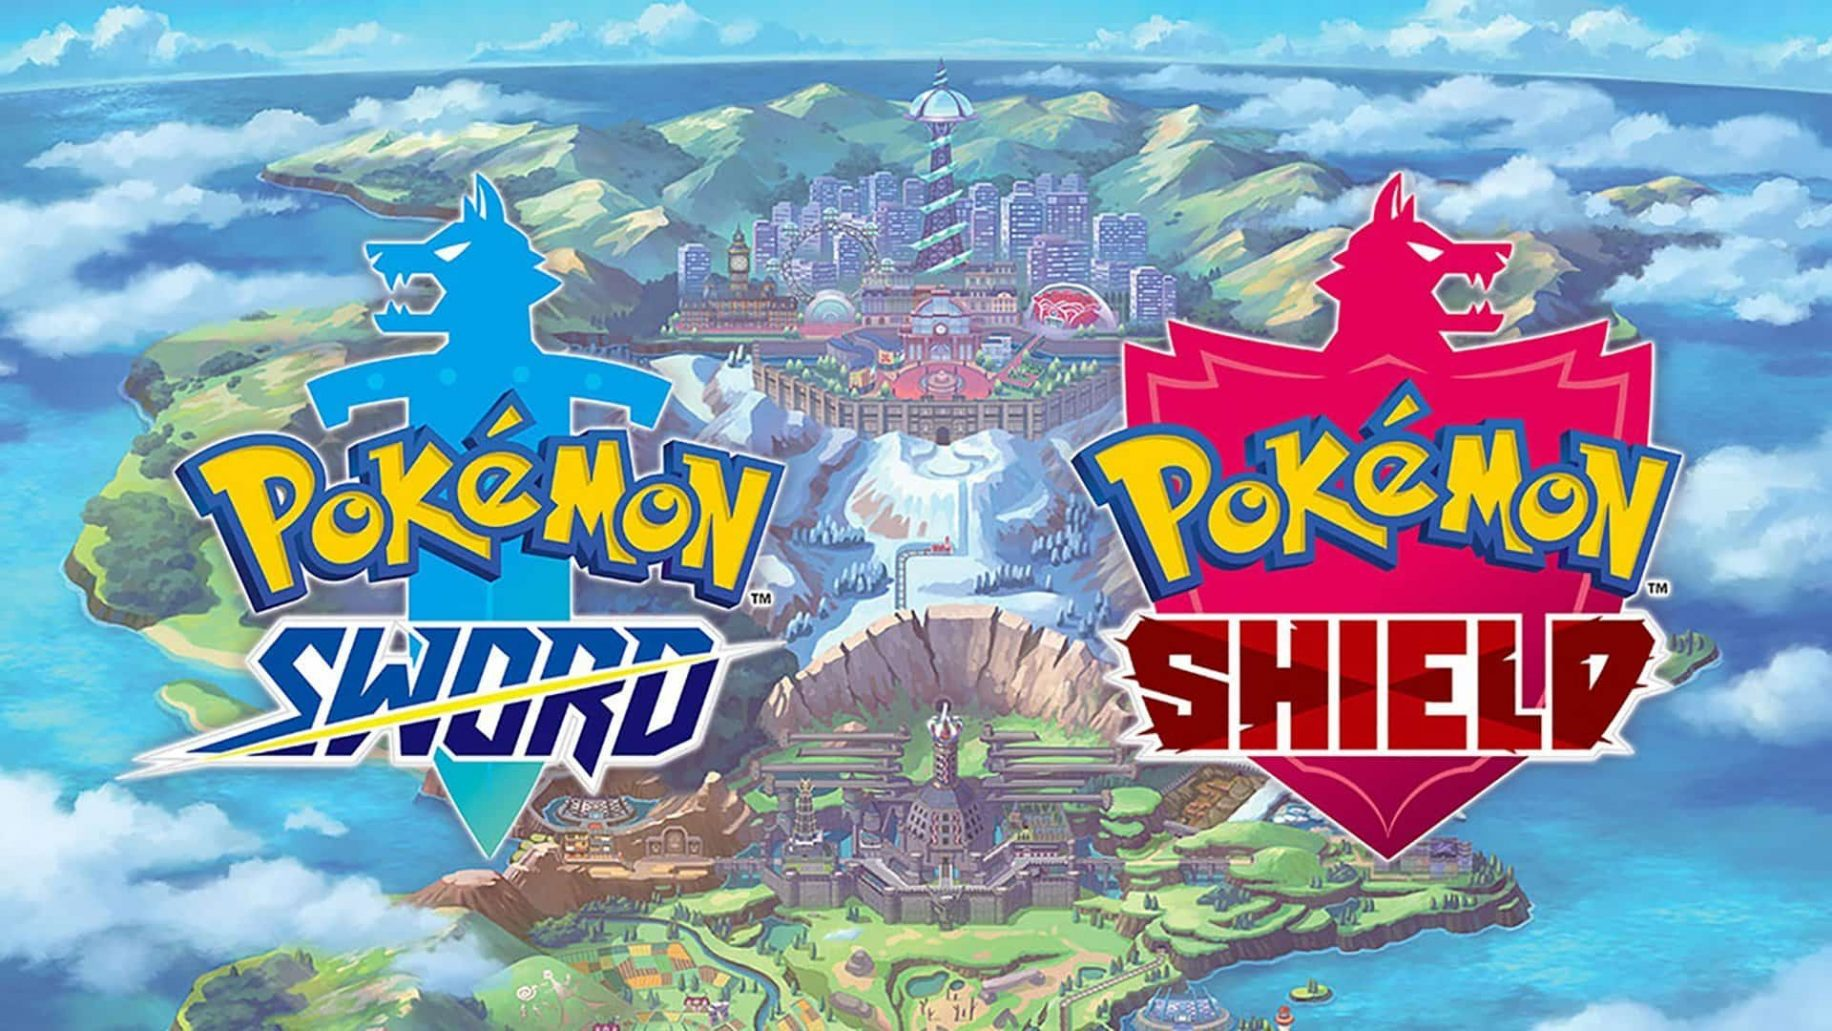 nintendo Pokémon sword and shield